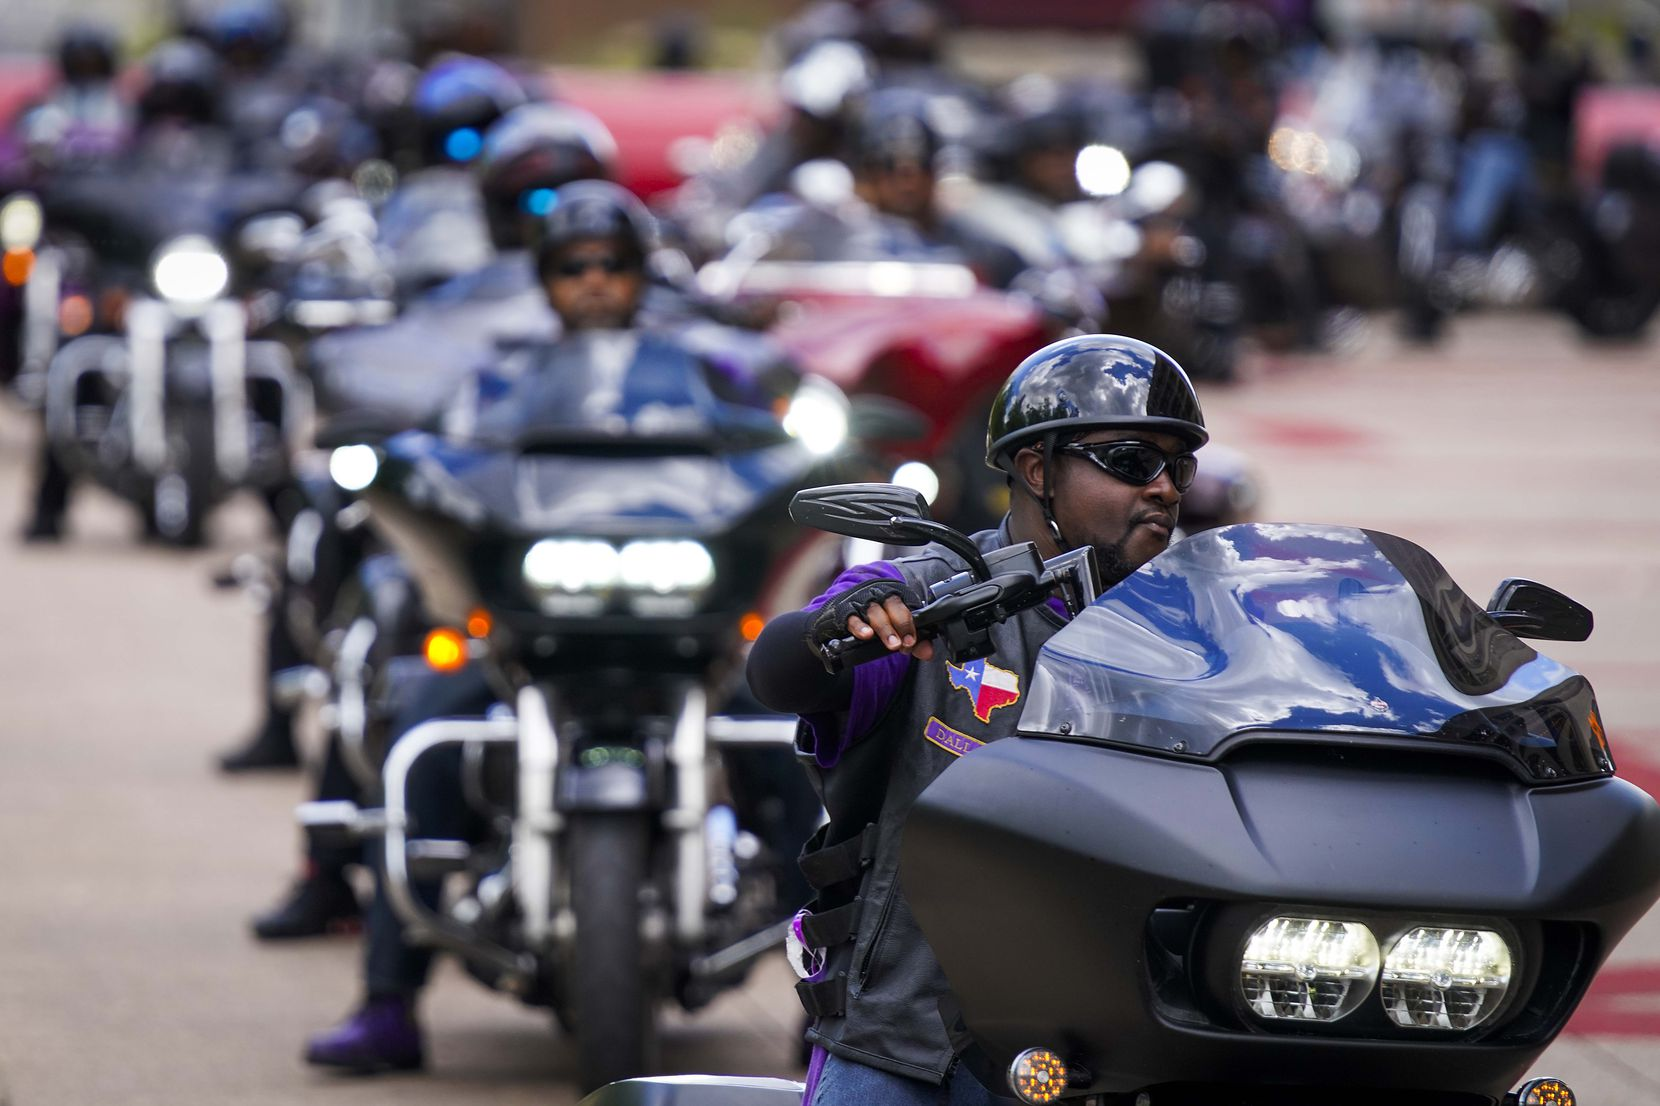 A group of more than 400 bikers arrives at Dallas City Hall during a ride and rally commemorating Juneteenth on Friday, June 19, 2020.